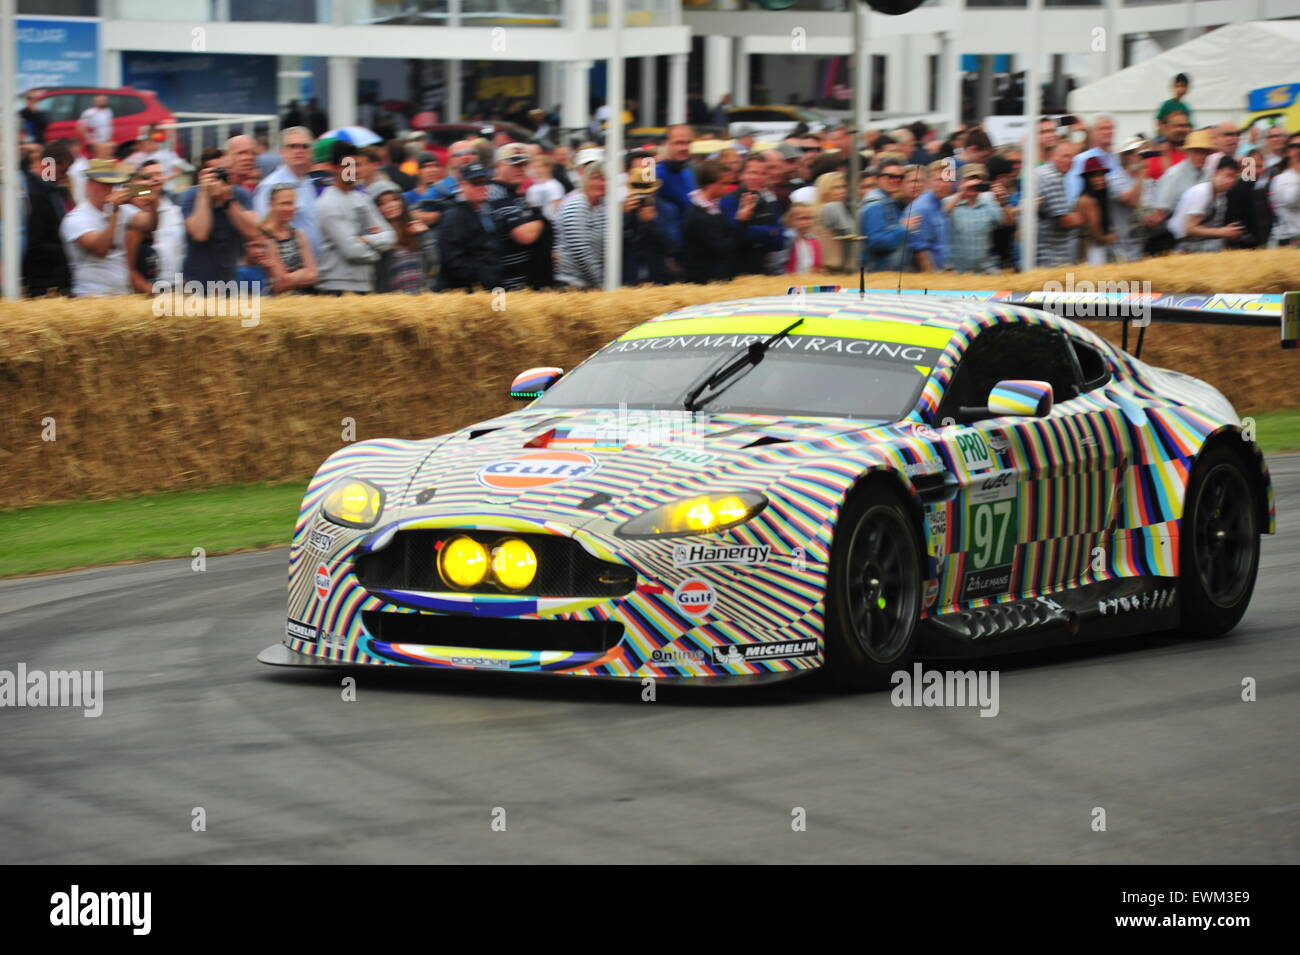 The Aston Martin Vantage Gte Art Car Painted By The German Artist Stock Photo Alamy